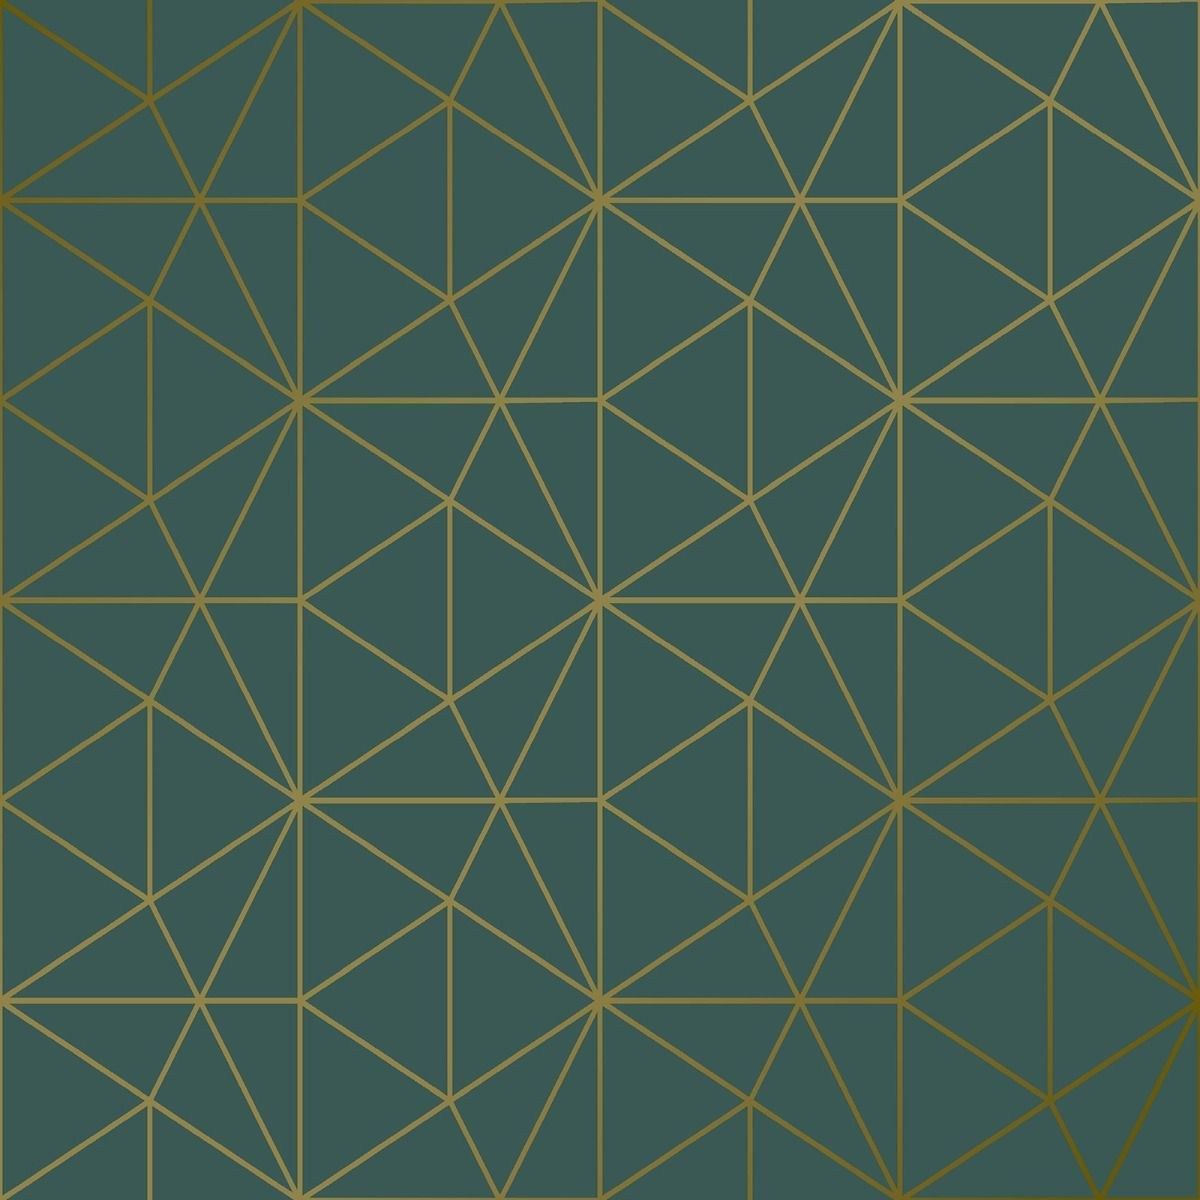 Metro Prism Geometric Triangle Wallpaper - Emerald Green and Gold - WOW037 room shot